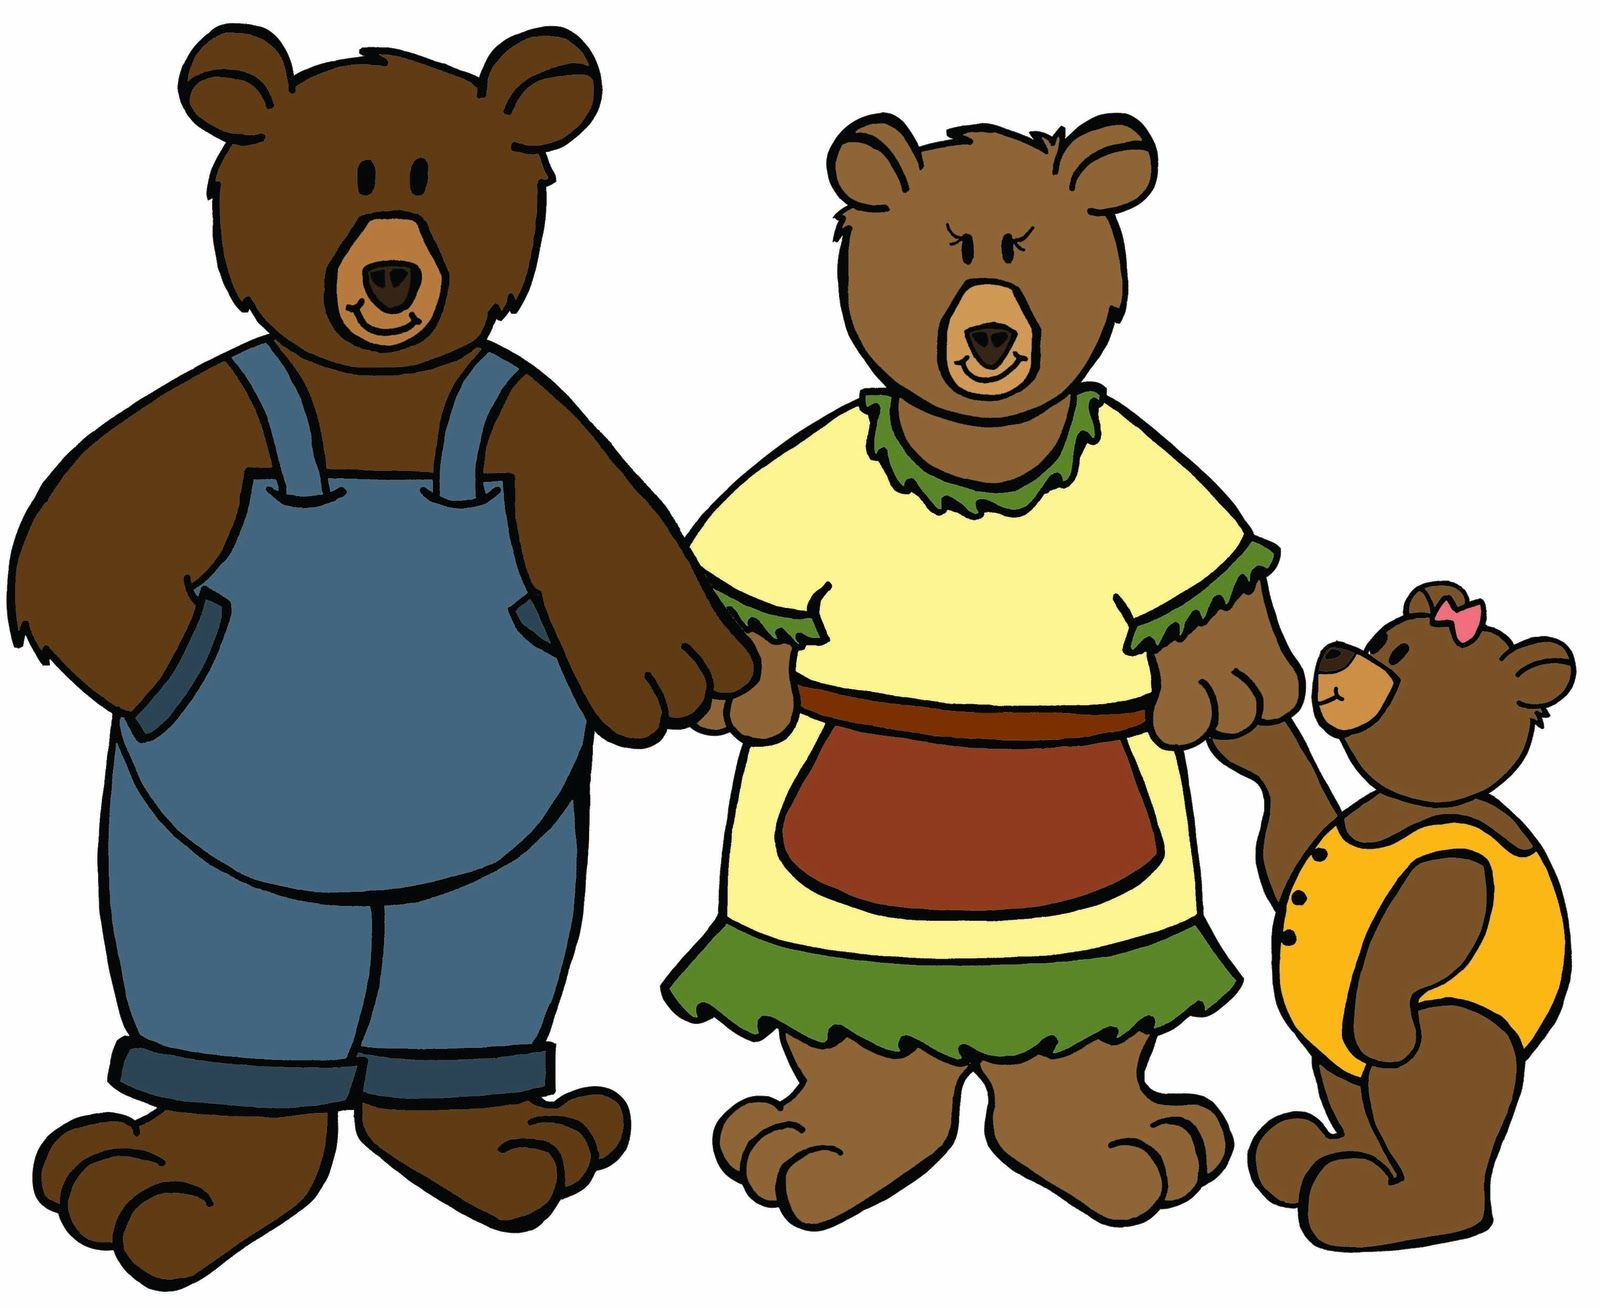 goldilocks and the three bears clipart at getdrawings com free for rh getdrawings com free clipart goldilocks and the three bears goldilocks bears clipart